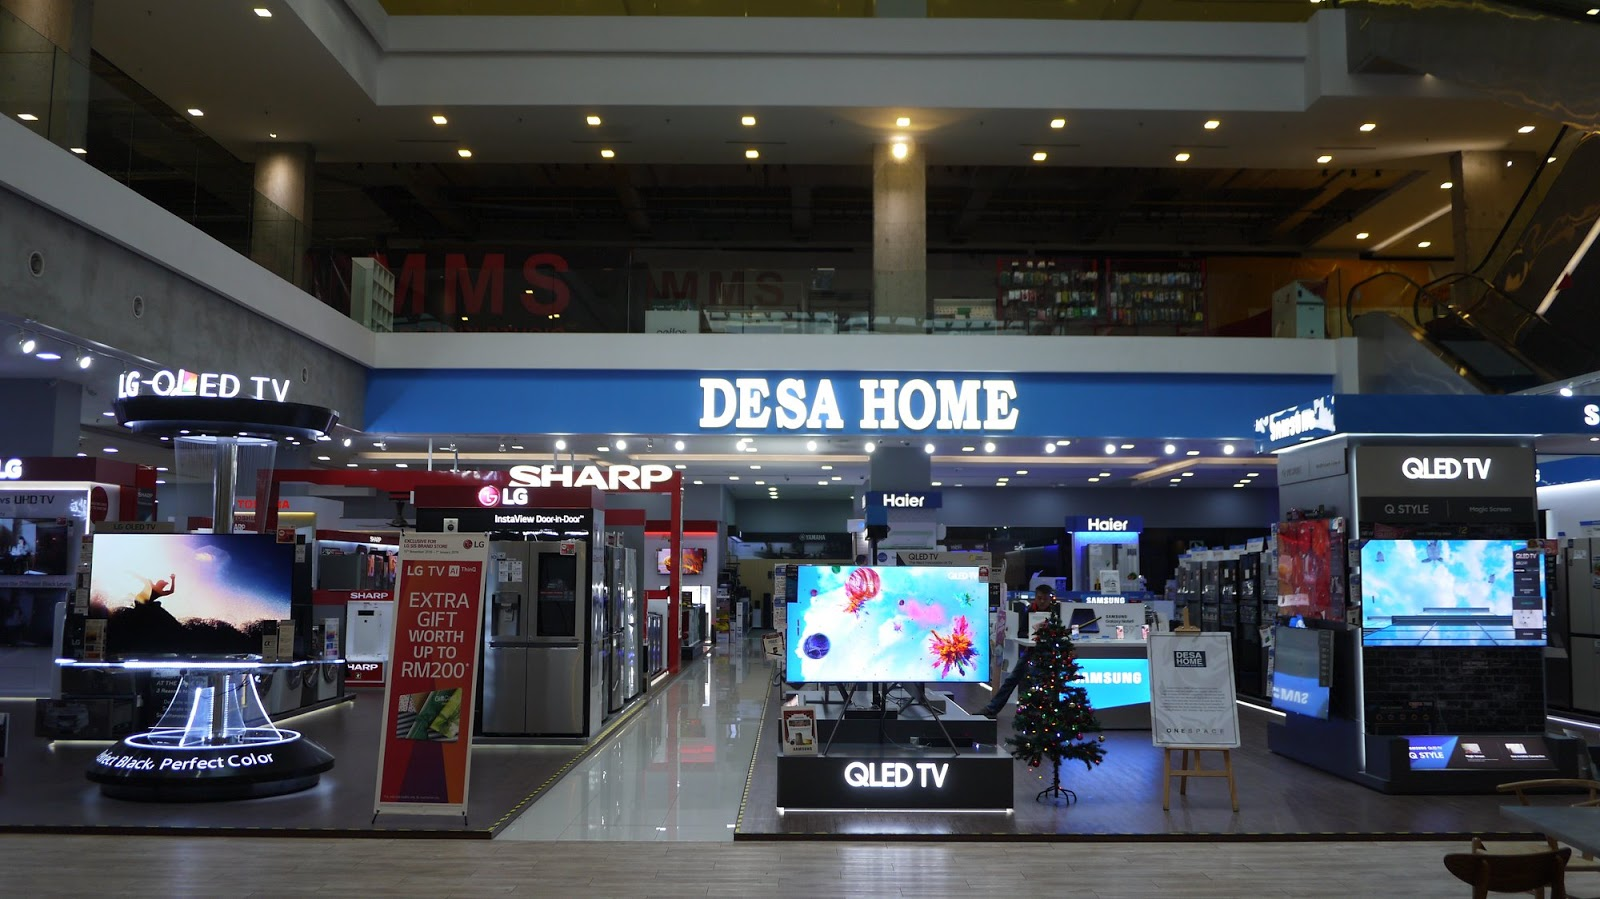 medium resolution of desa home one city s branch is very huge and well organised occupies a 1 394sq m space we can find home entertainment systems including audiovisual